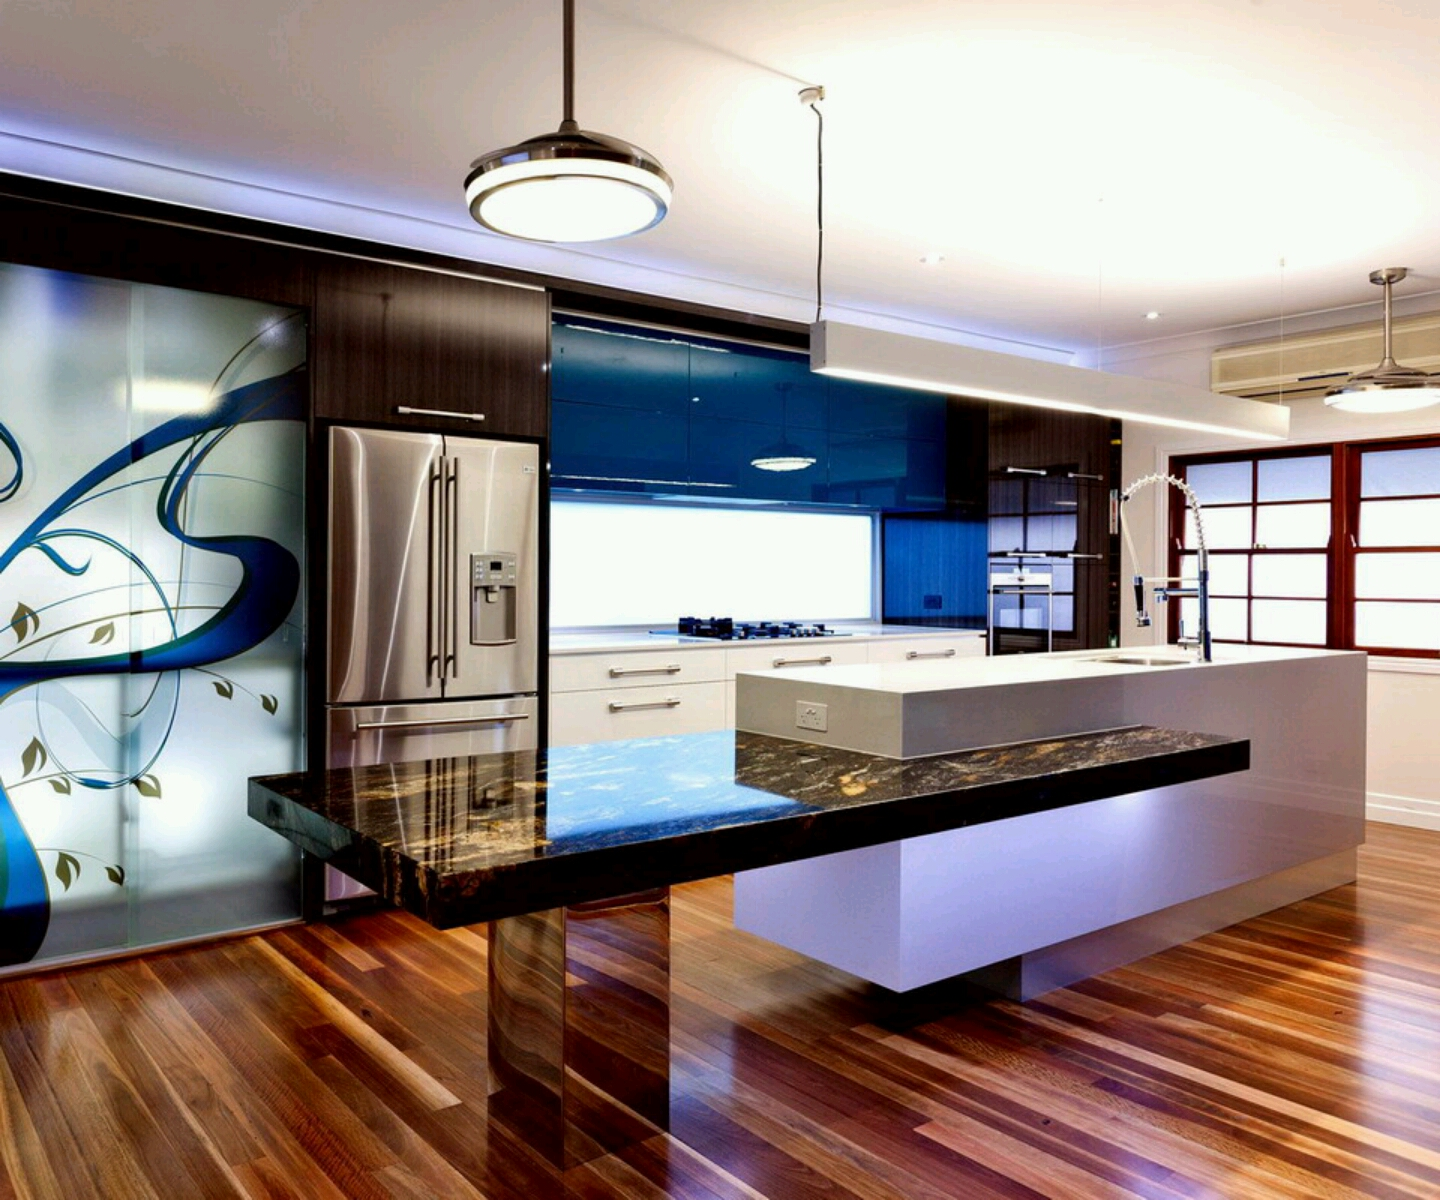 New home designs latest ultra modern kitchen designs ideas for Kitchen ideas and designs